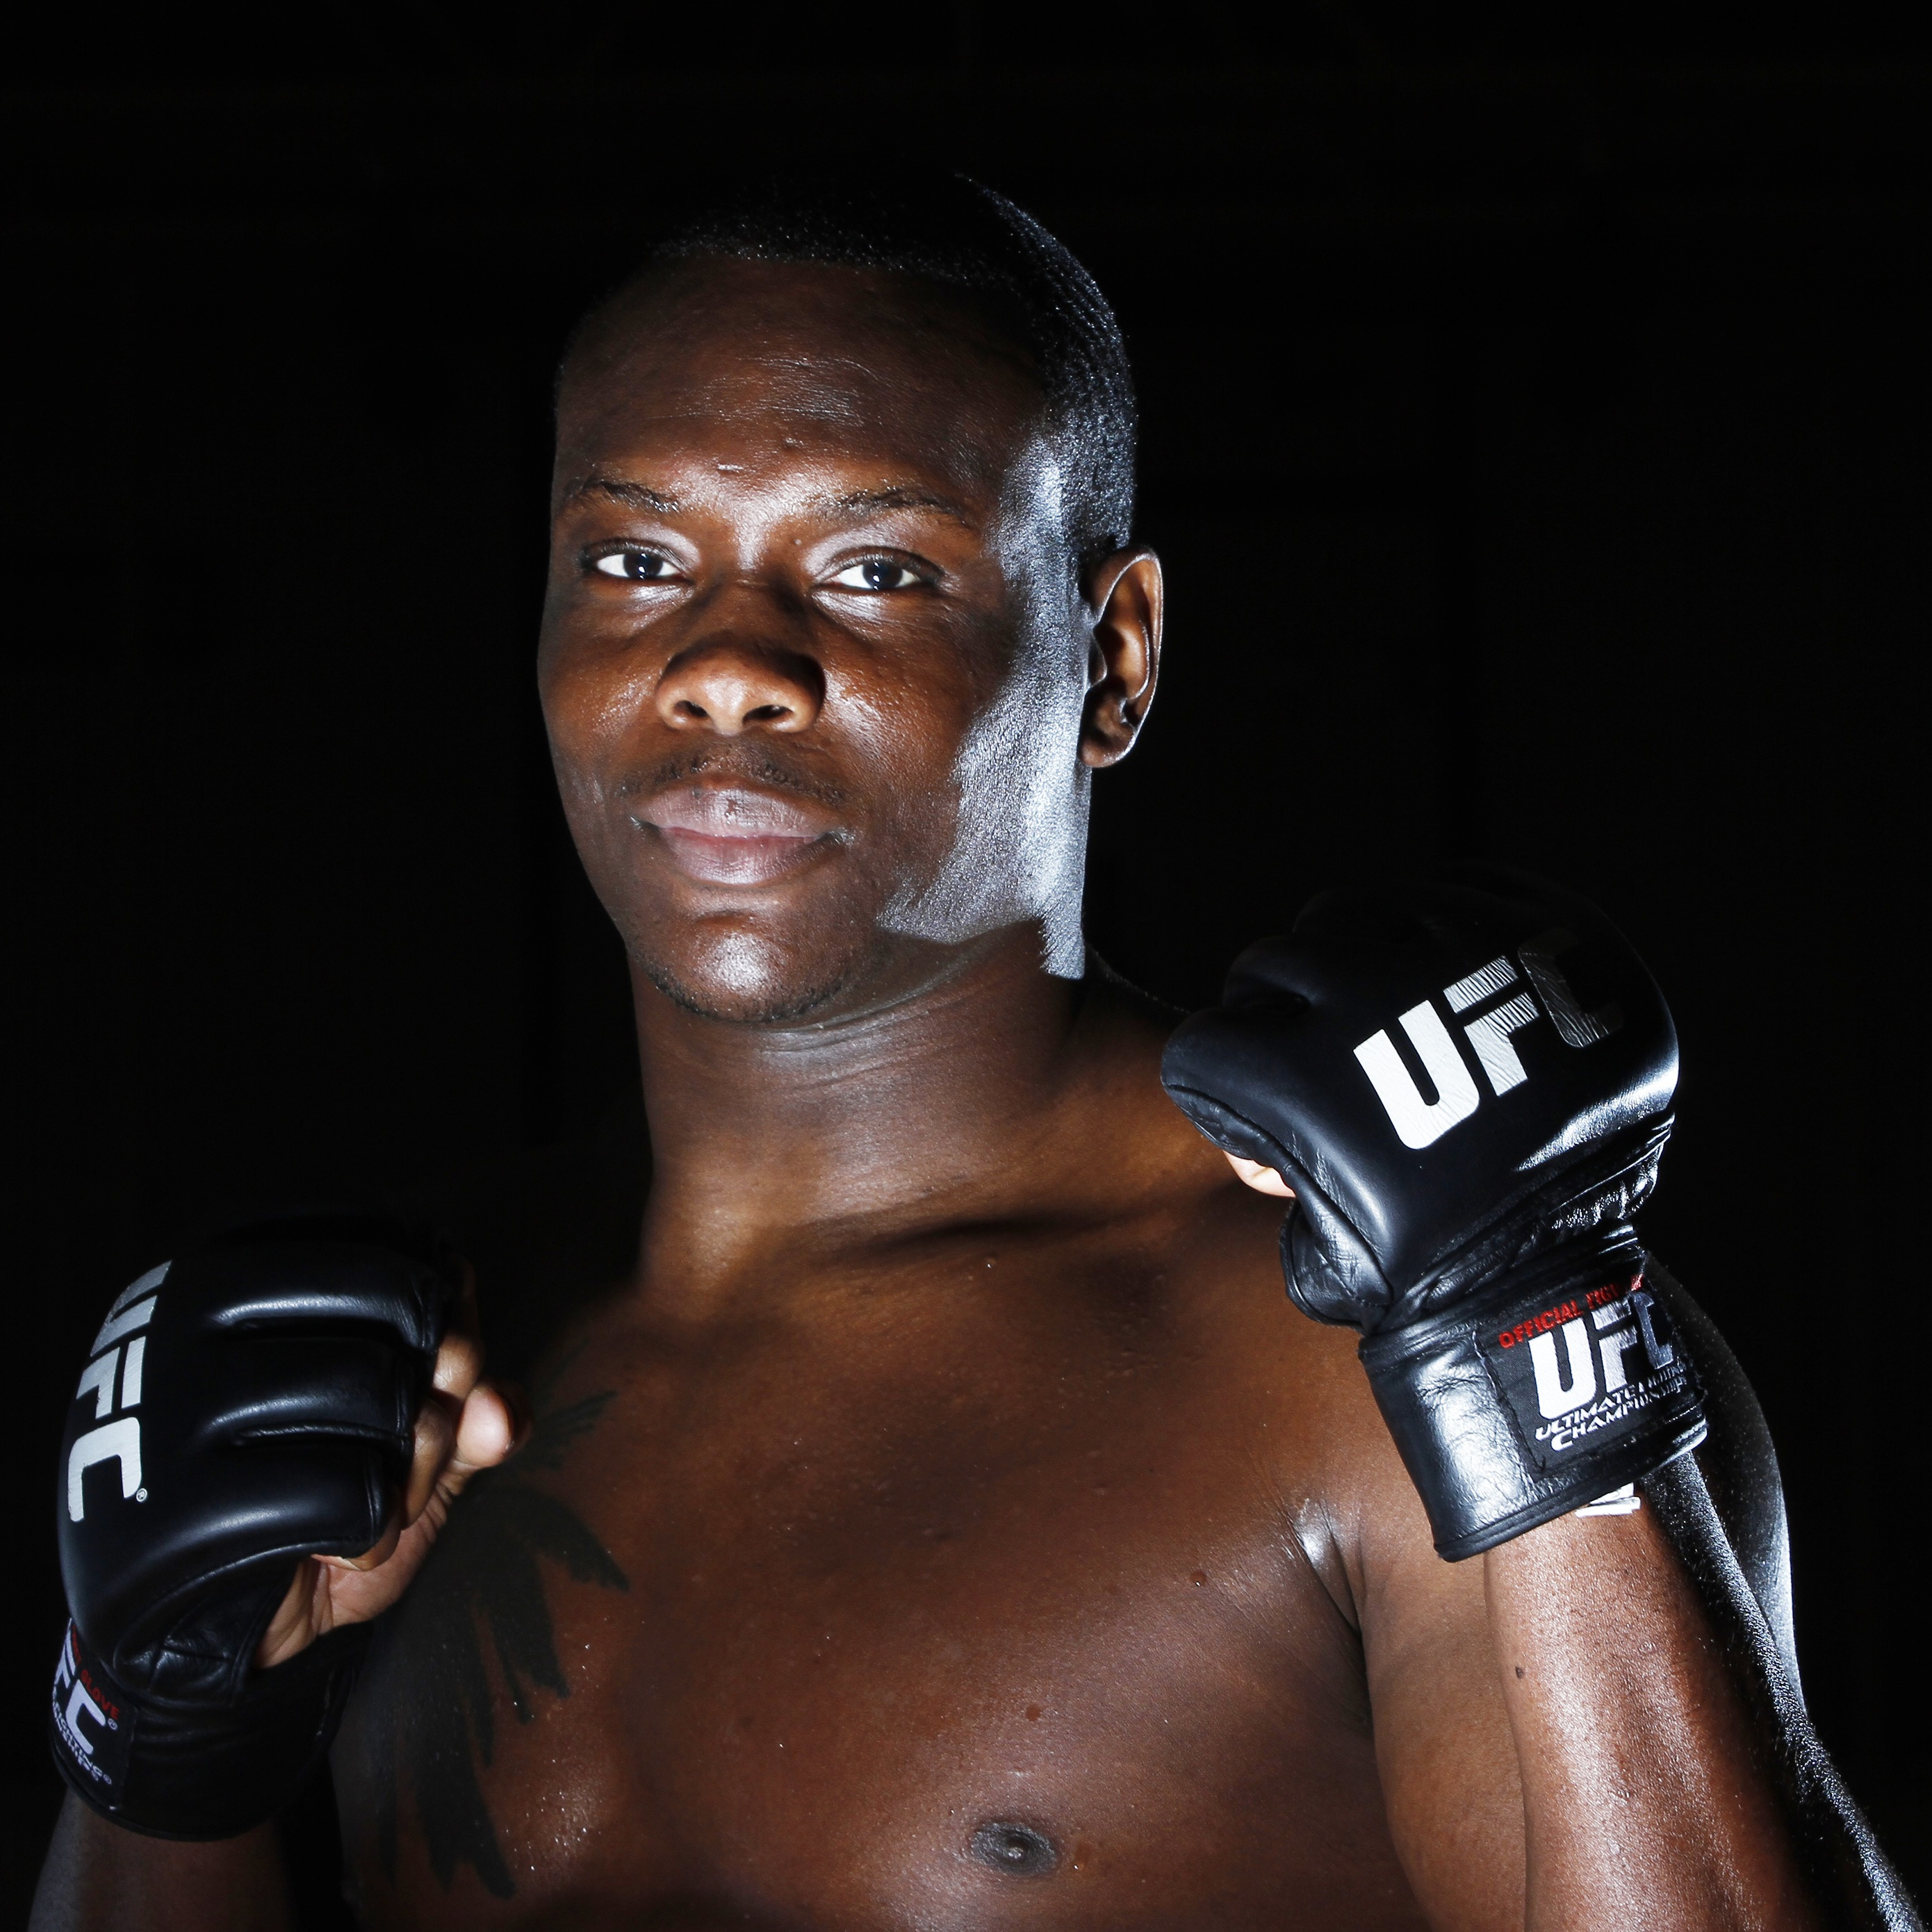 Download wallpaper 2780x2780 ovince saint preux ultimate fighting 2780x2780